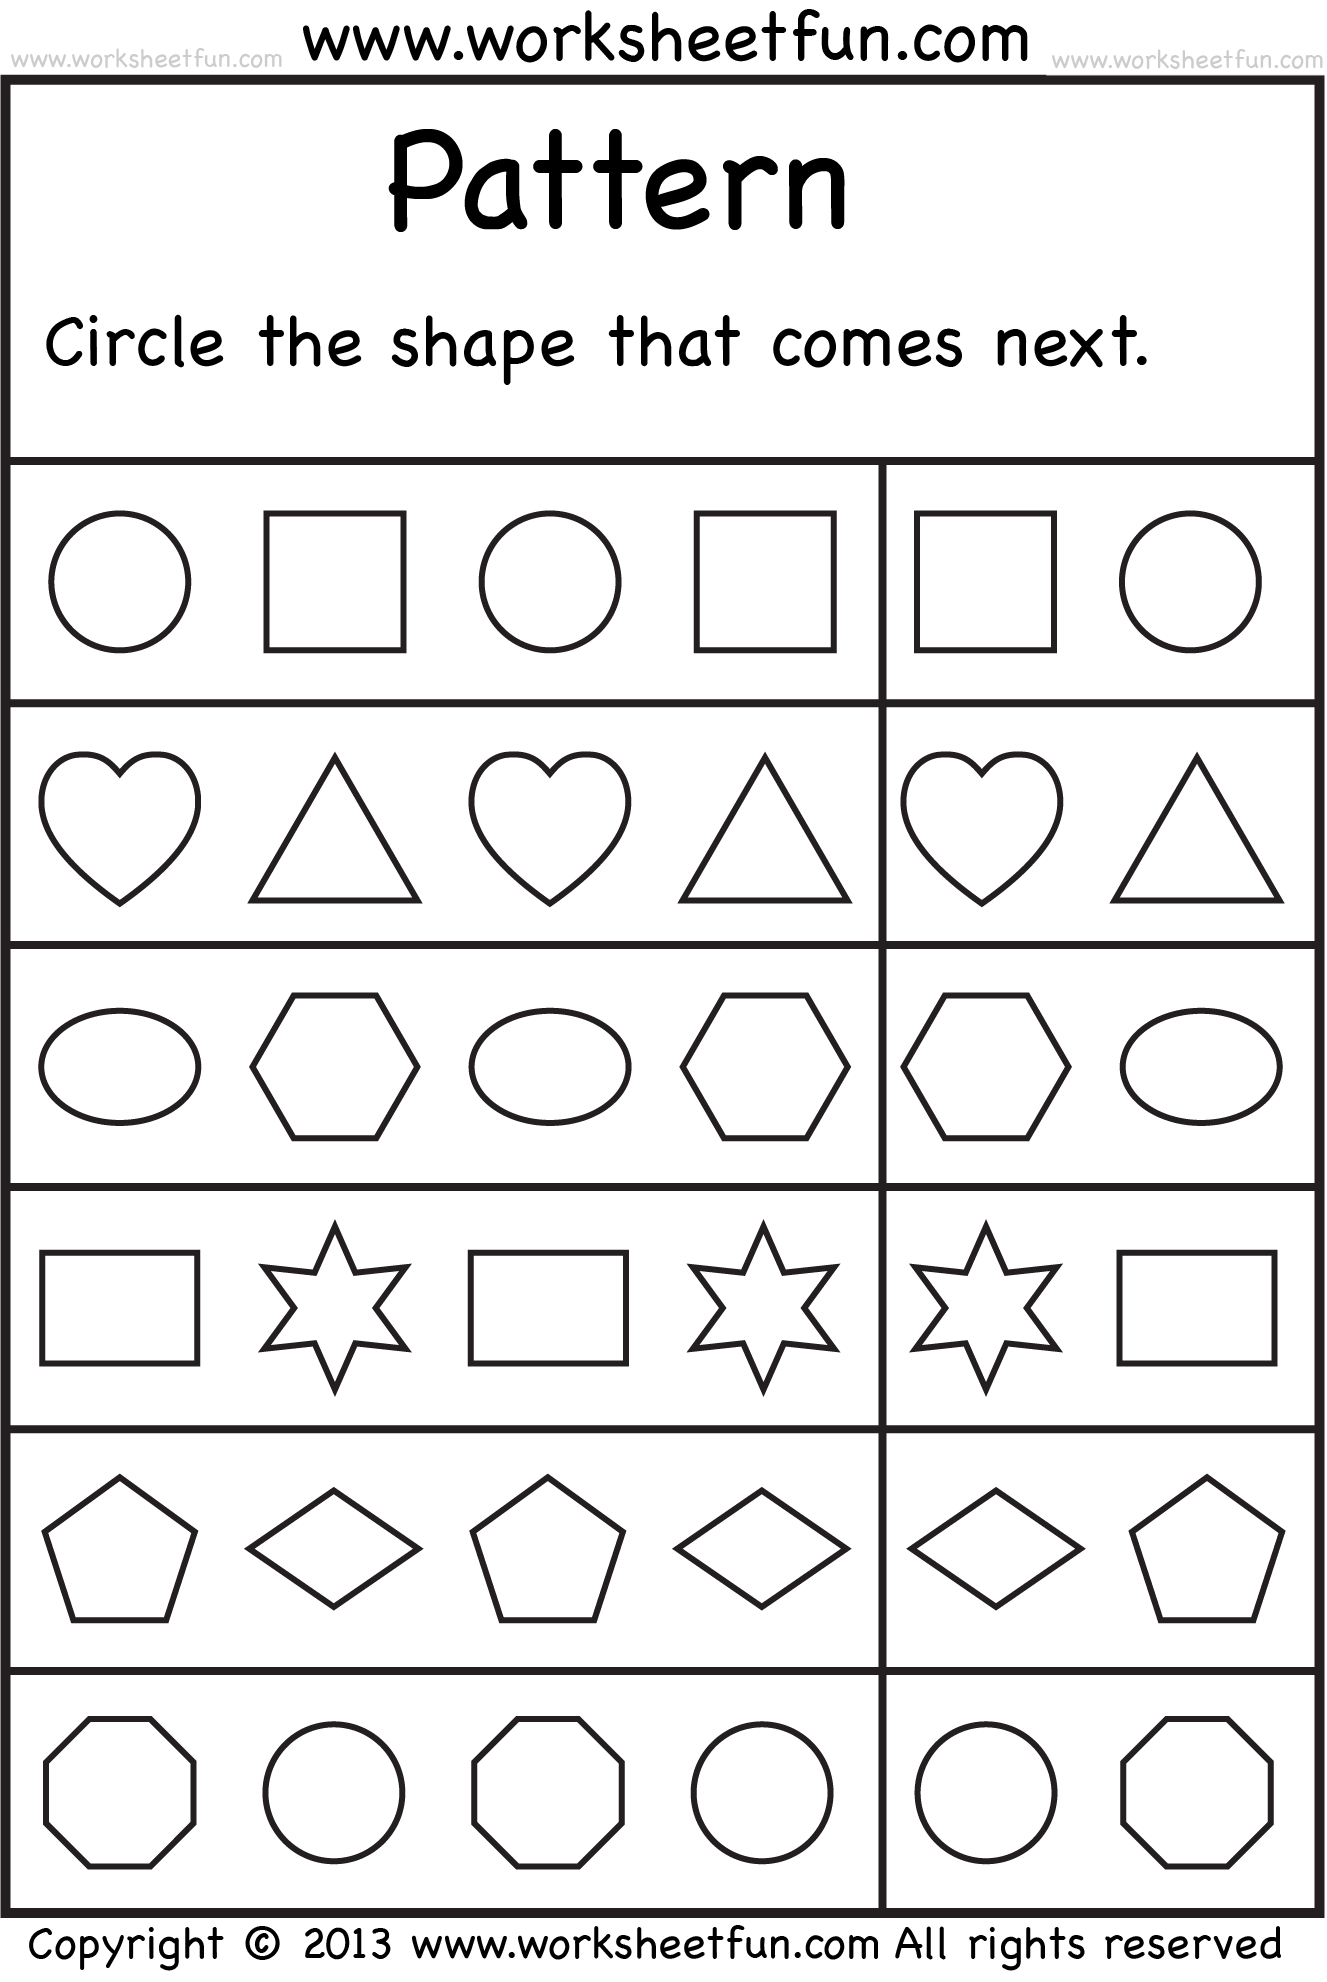 Weirdmailus  Ravishing  Images About School Worksheets On Pinterest  Number Words  With Magnificent  Images About School Worksheets On Pinterest  Number Words Alphabet Worksheets And Free Printable Kindergarten Worksheets With Awesome Algebra Vocabulary Worksheet Also Checkbook Balancing Worksheet In Addition Compare And Contrast Worksheets Pdf And Compositions Of Transformations Worksheet As Well As Single Step Equations Worksheet Additionally Value Worksheet From Pinterestcom With Weirdmailus  Magnificent  Images About School Worksheets On Pinterest  Number Words  With Awesome  Images About School Worksheets On Pinterest  Number Words Alphabet Worksheets And Free Printable Kindergarten Worksheets And Ravishing Algebra Vocabulary Worksheet Also Checkbook Balancing Worksheet In Addition Compare And Contrast Worksheets Pdf From Pinterestcom